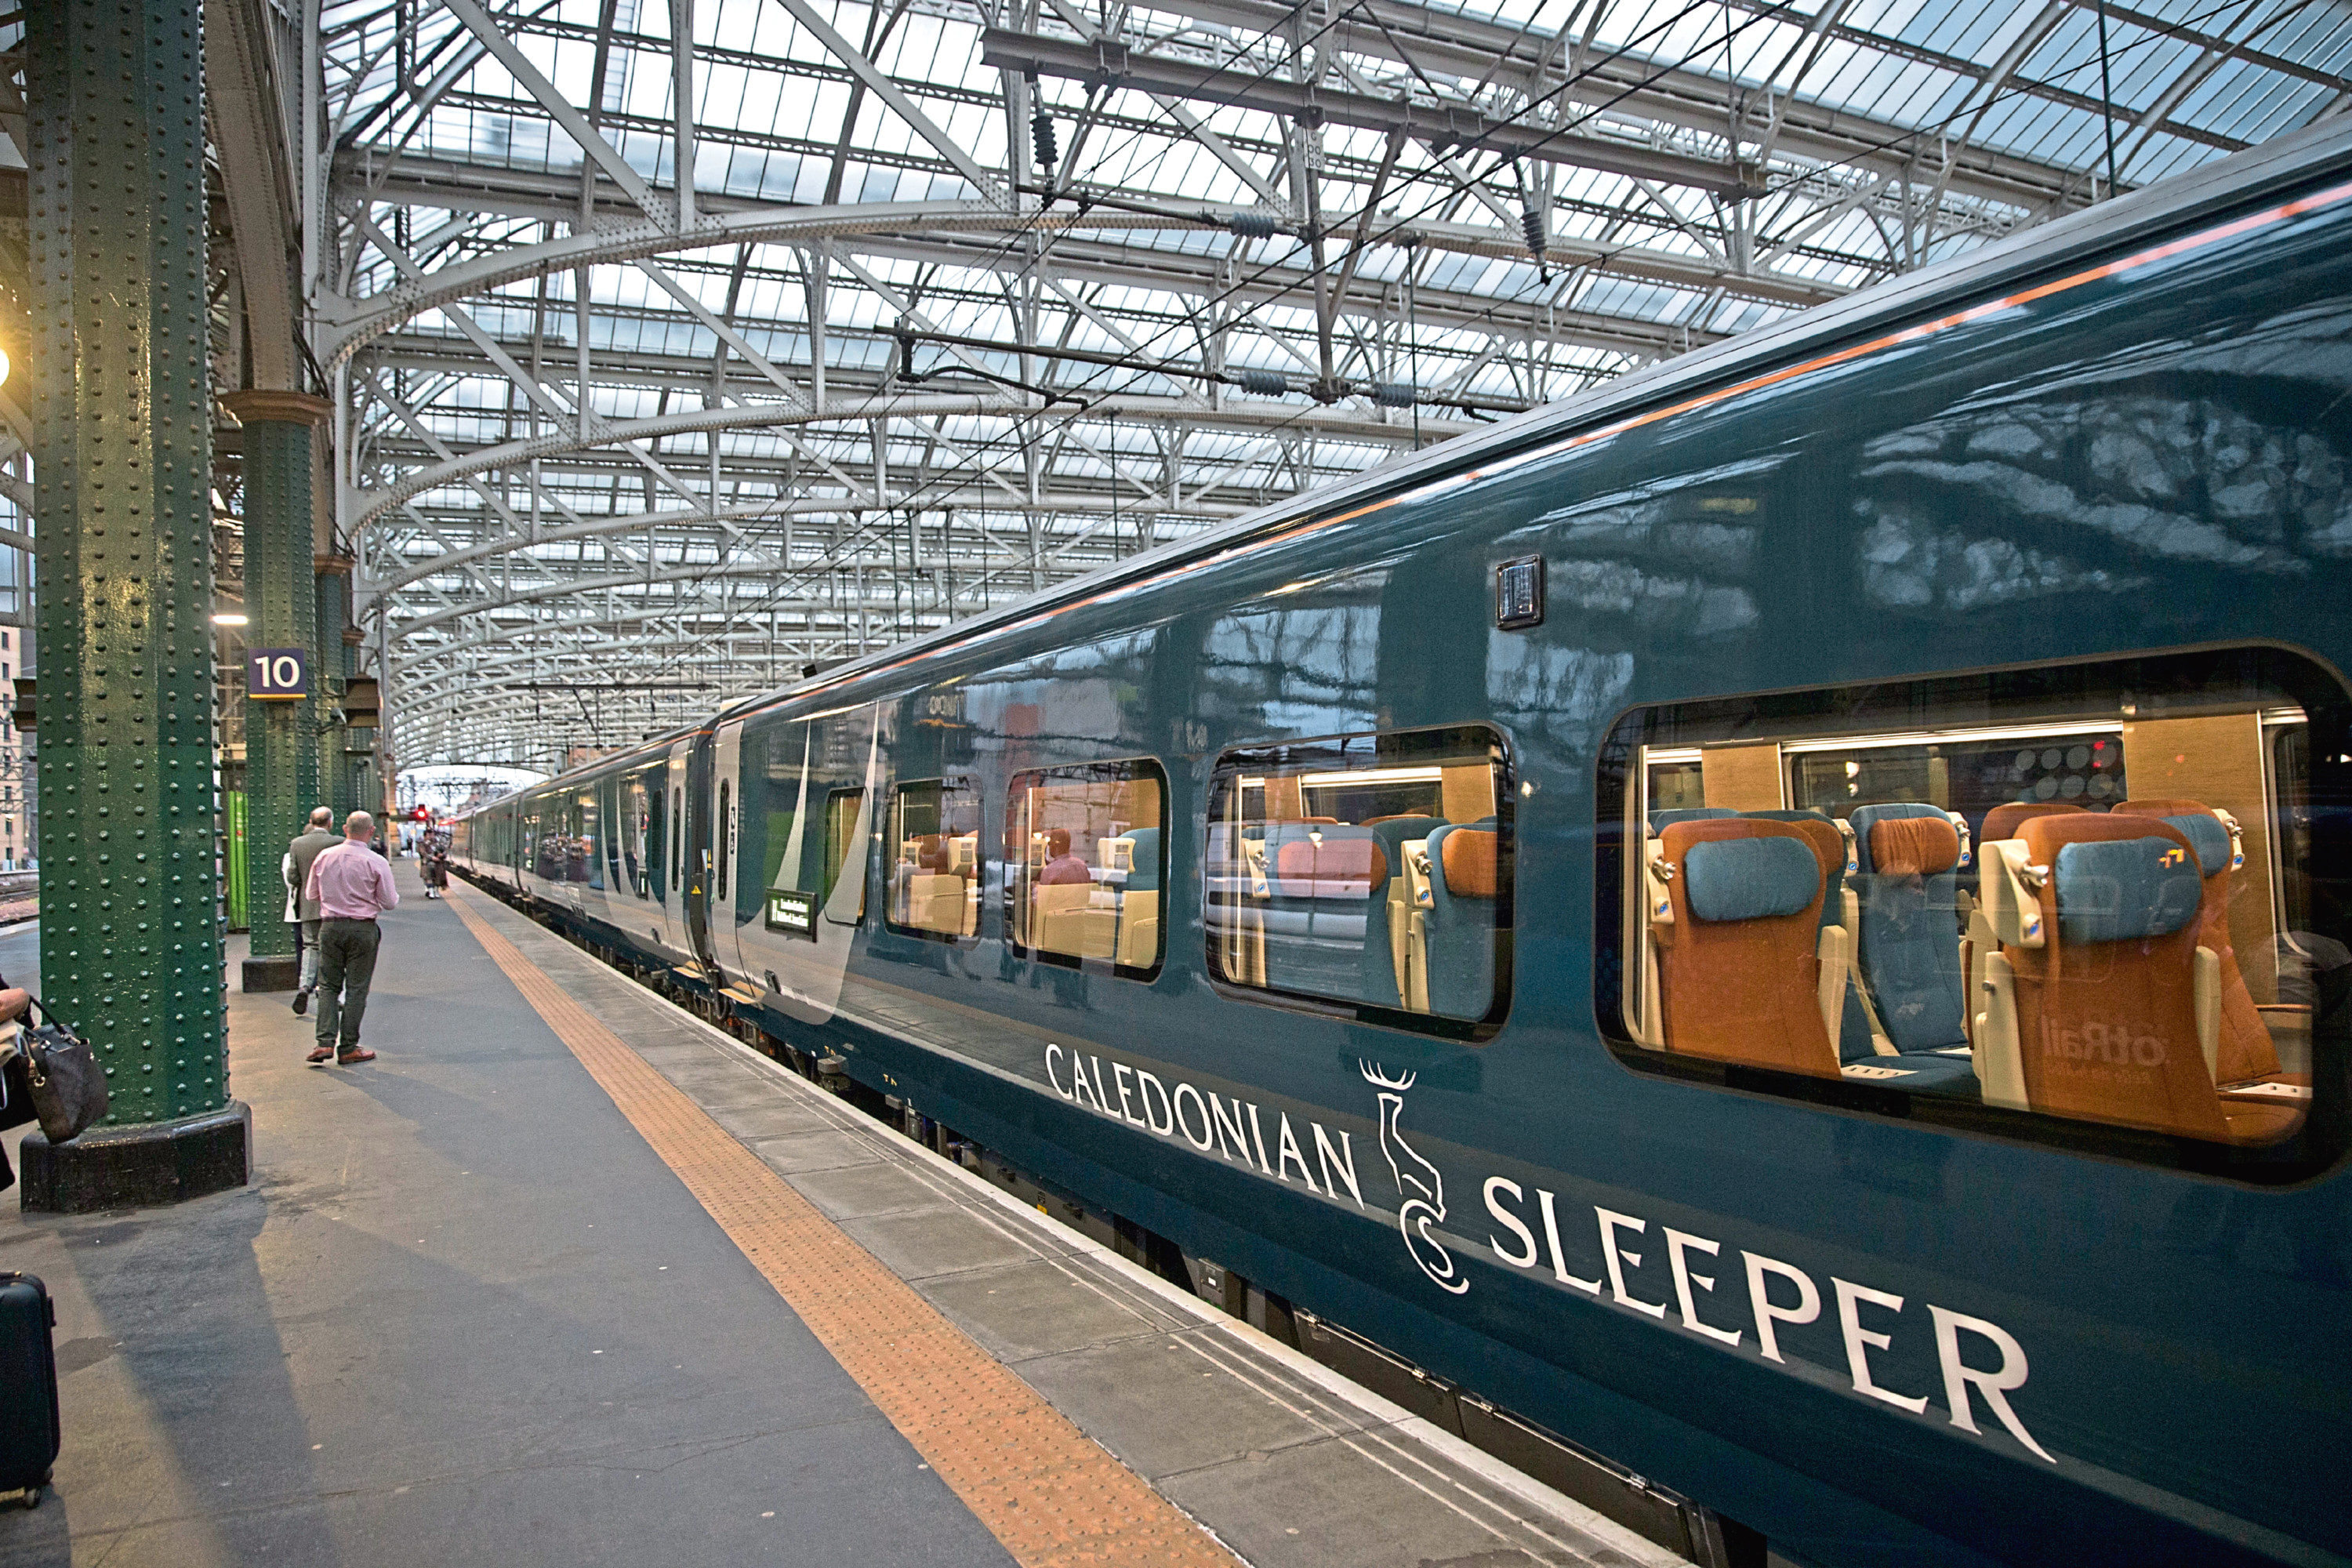 Running trains during lockdown is costing taxpayers £250 million